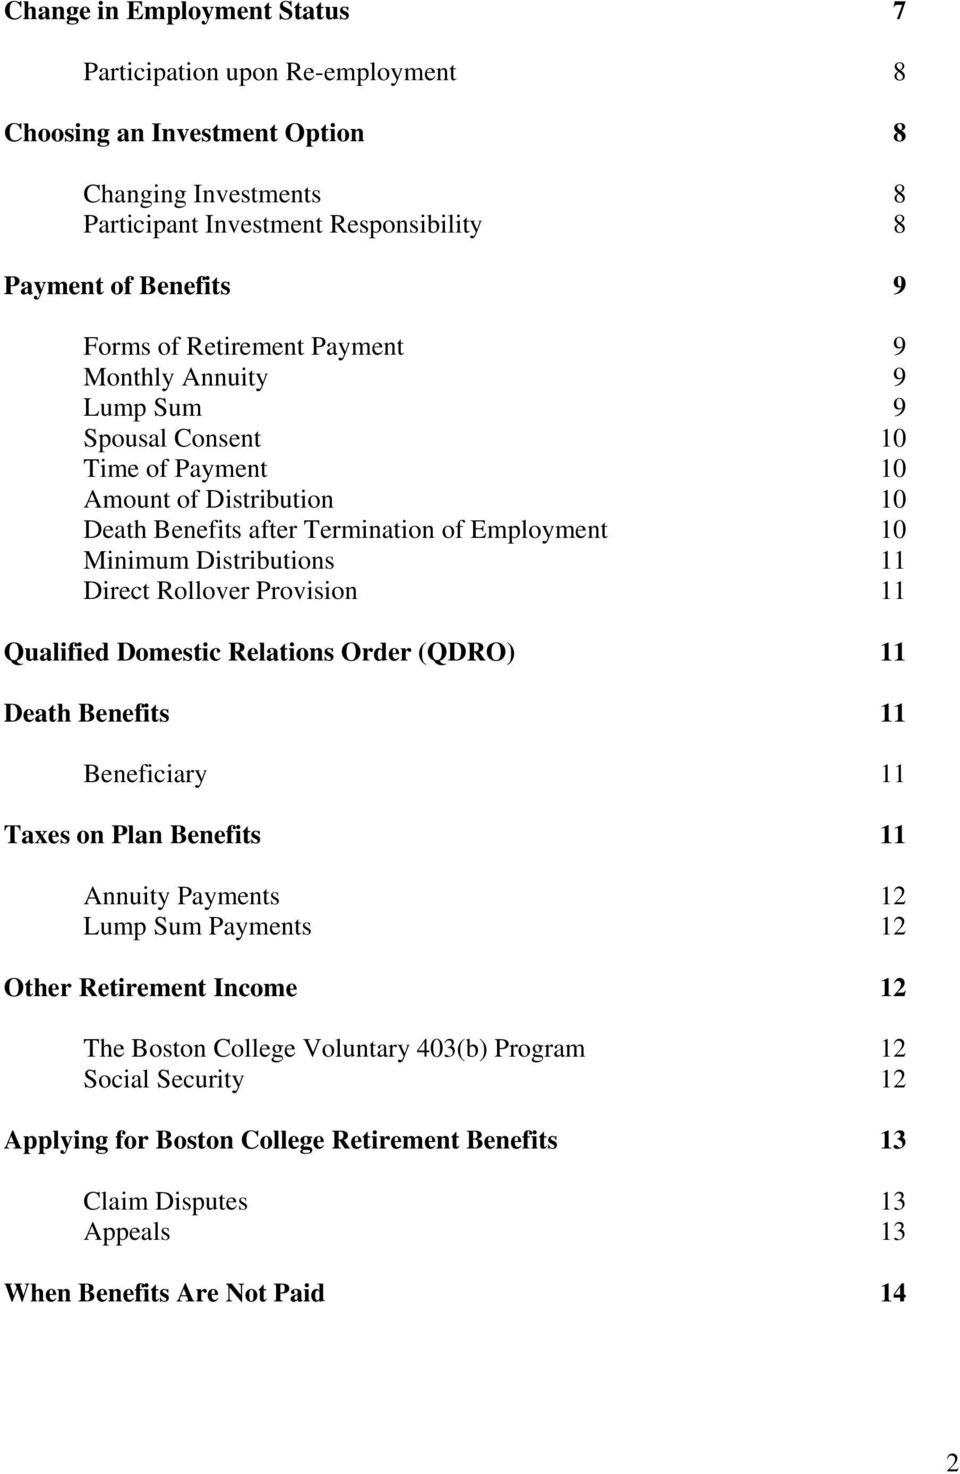 11 Direct Rollover Provision 11 Qualified Domestic Relations Order (QDRO) 11 Death Benefits 11 Beneficiary 11 Taxes on Plan Benefits 11 Annuity Payments 12 Lump Sum Payments 12 Other